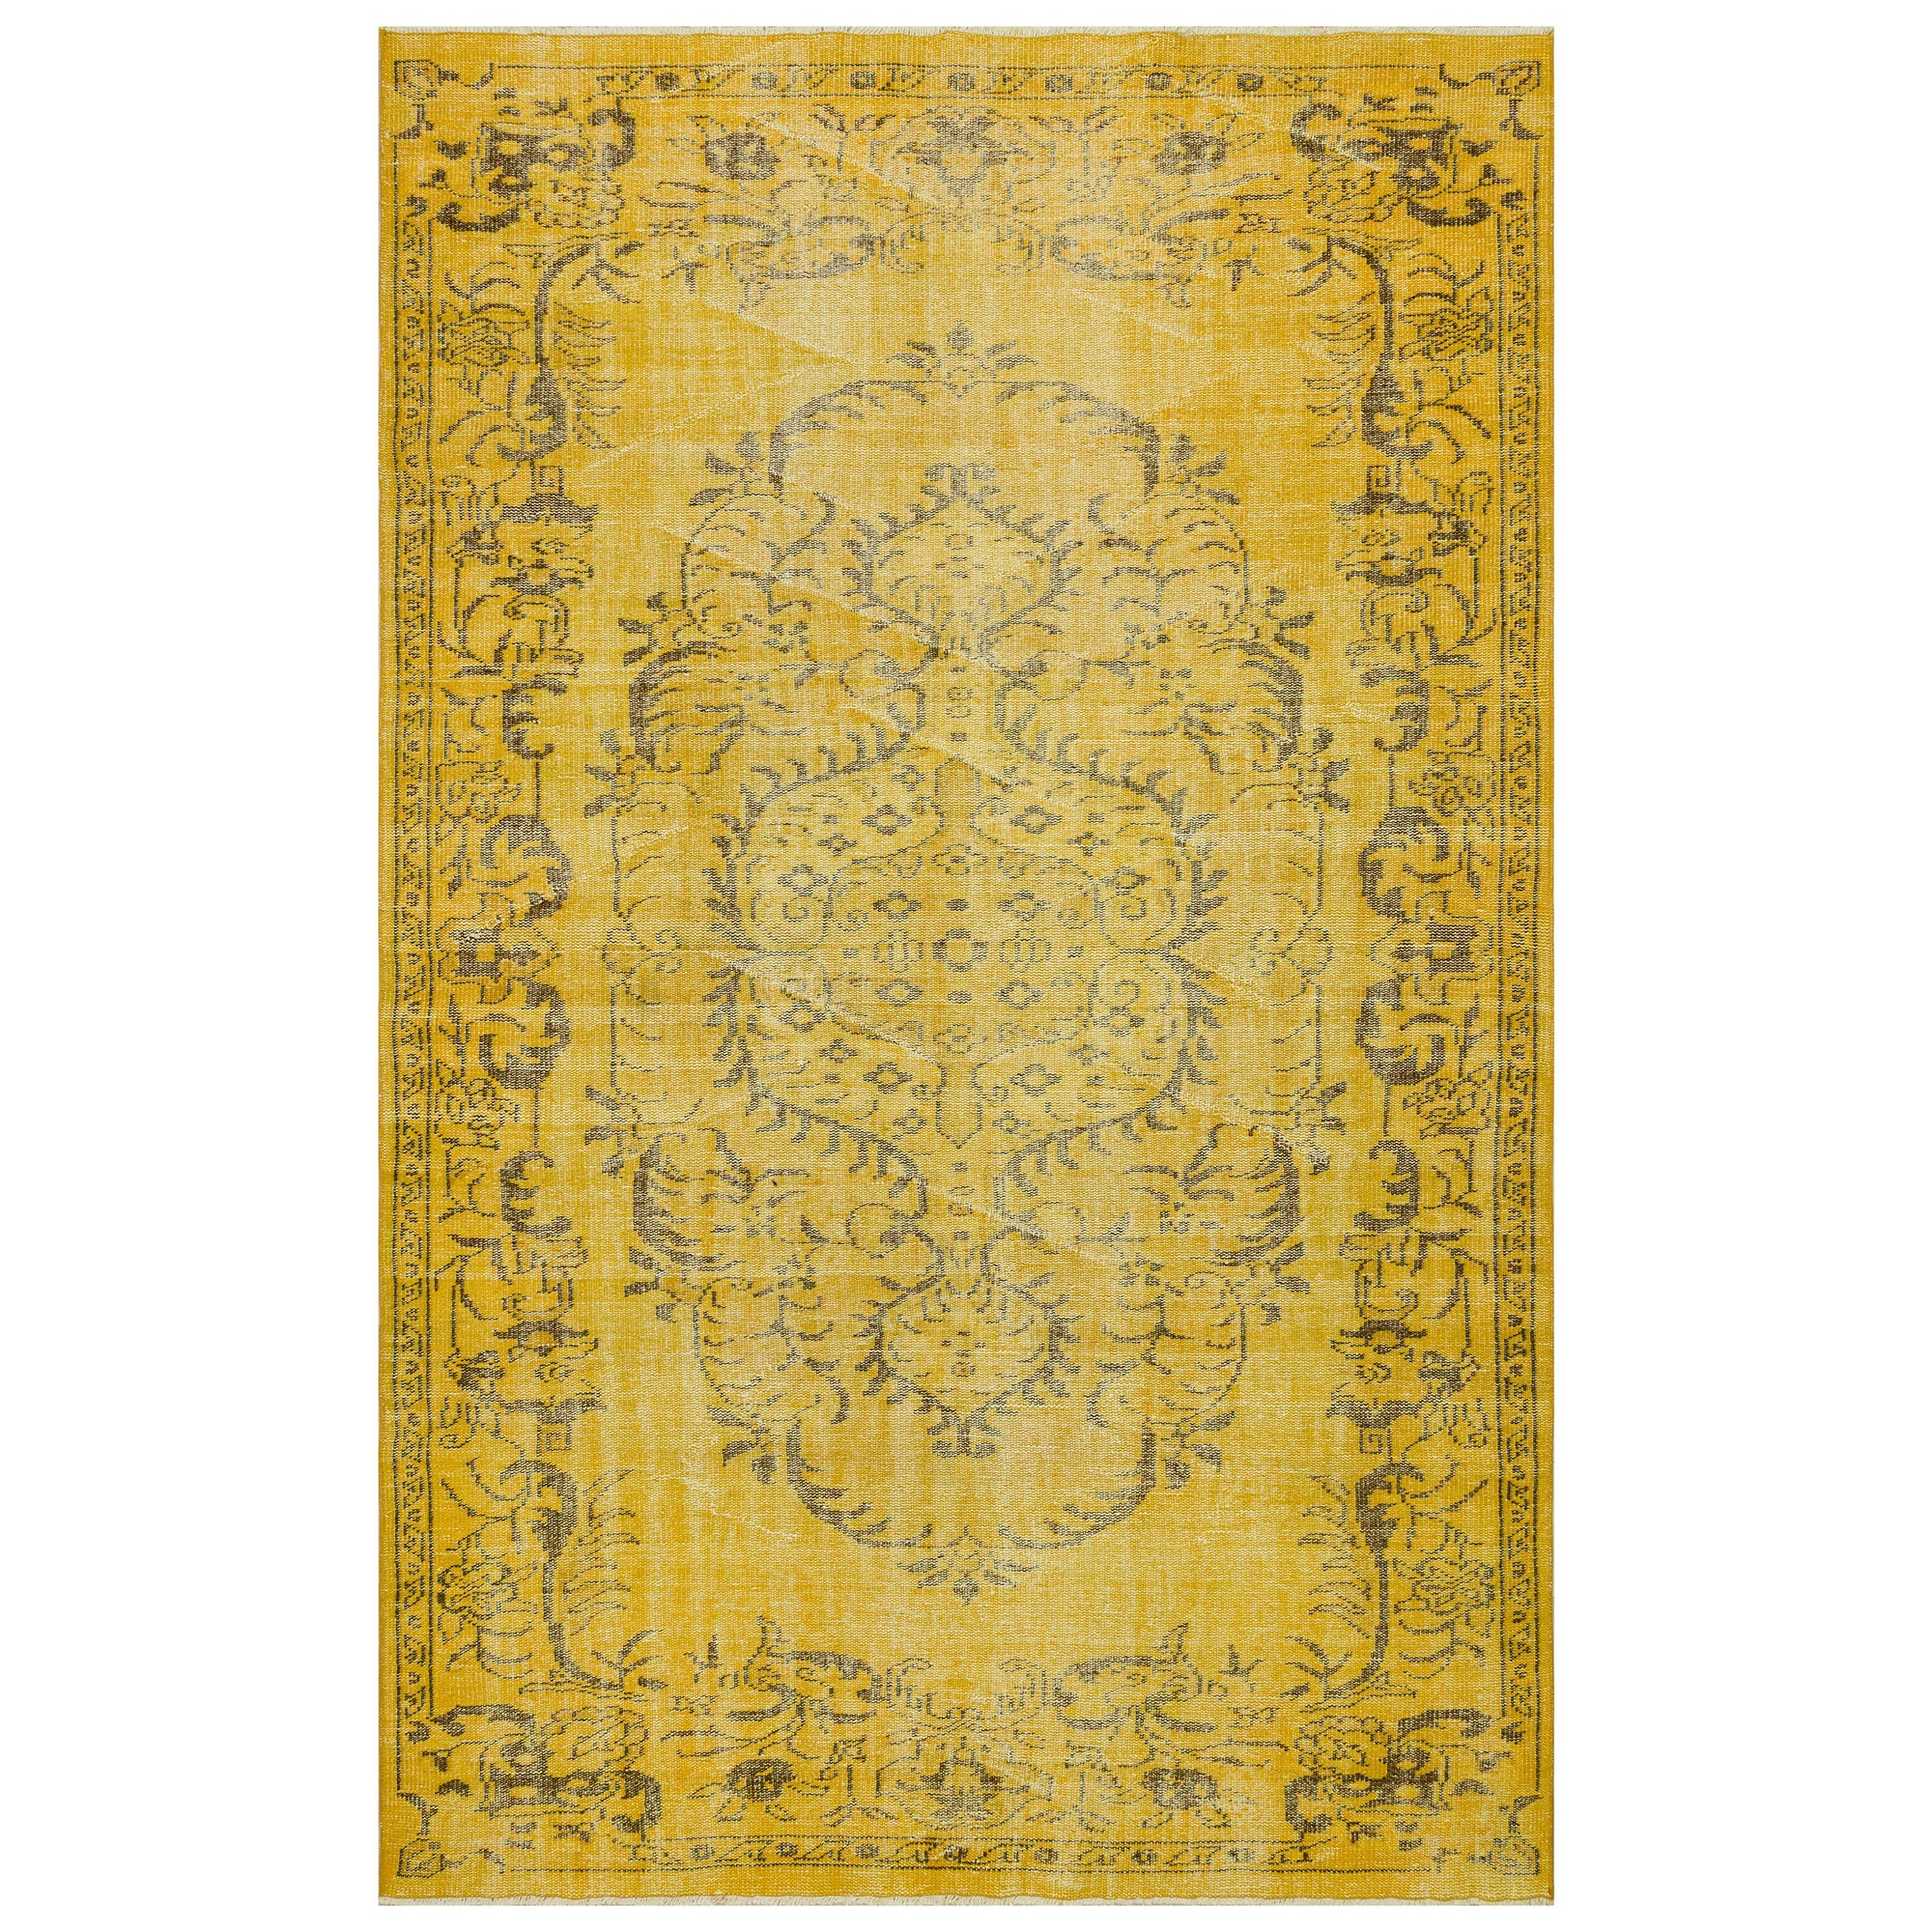 186 X 293 Anatolian Hand Knotted Carpet Vintage Style 60N2829 -  186 × 293 سجادة أناضولية معقودة يدويًا - Shop Online Furniture and Home Decor Store in Dubai, UAE at ebarza